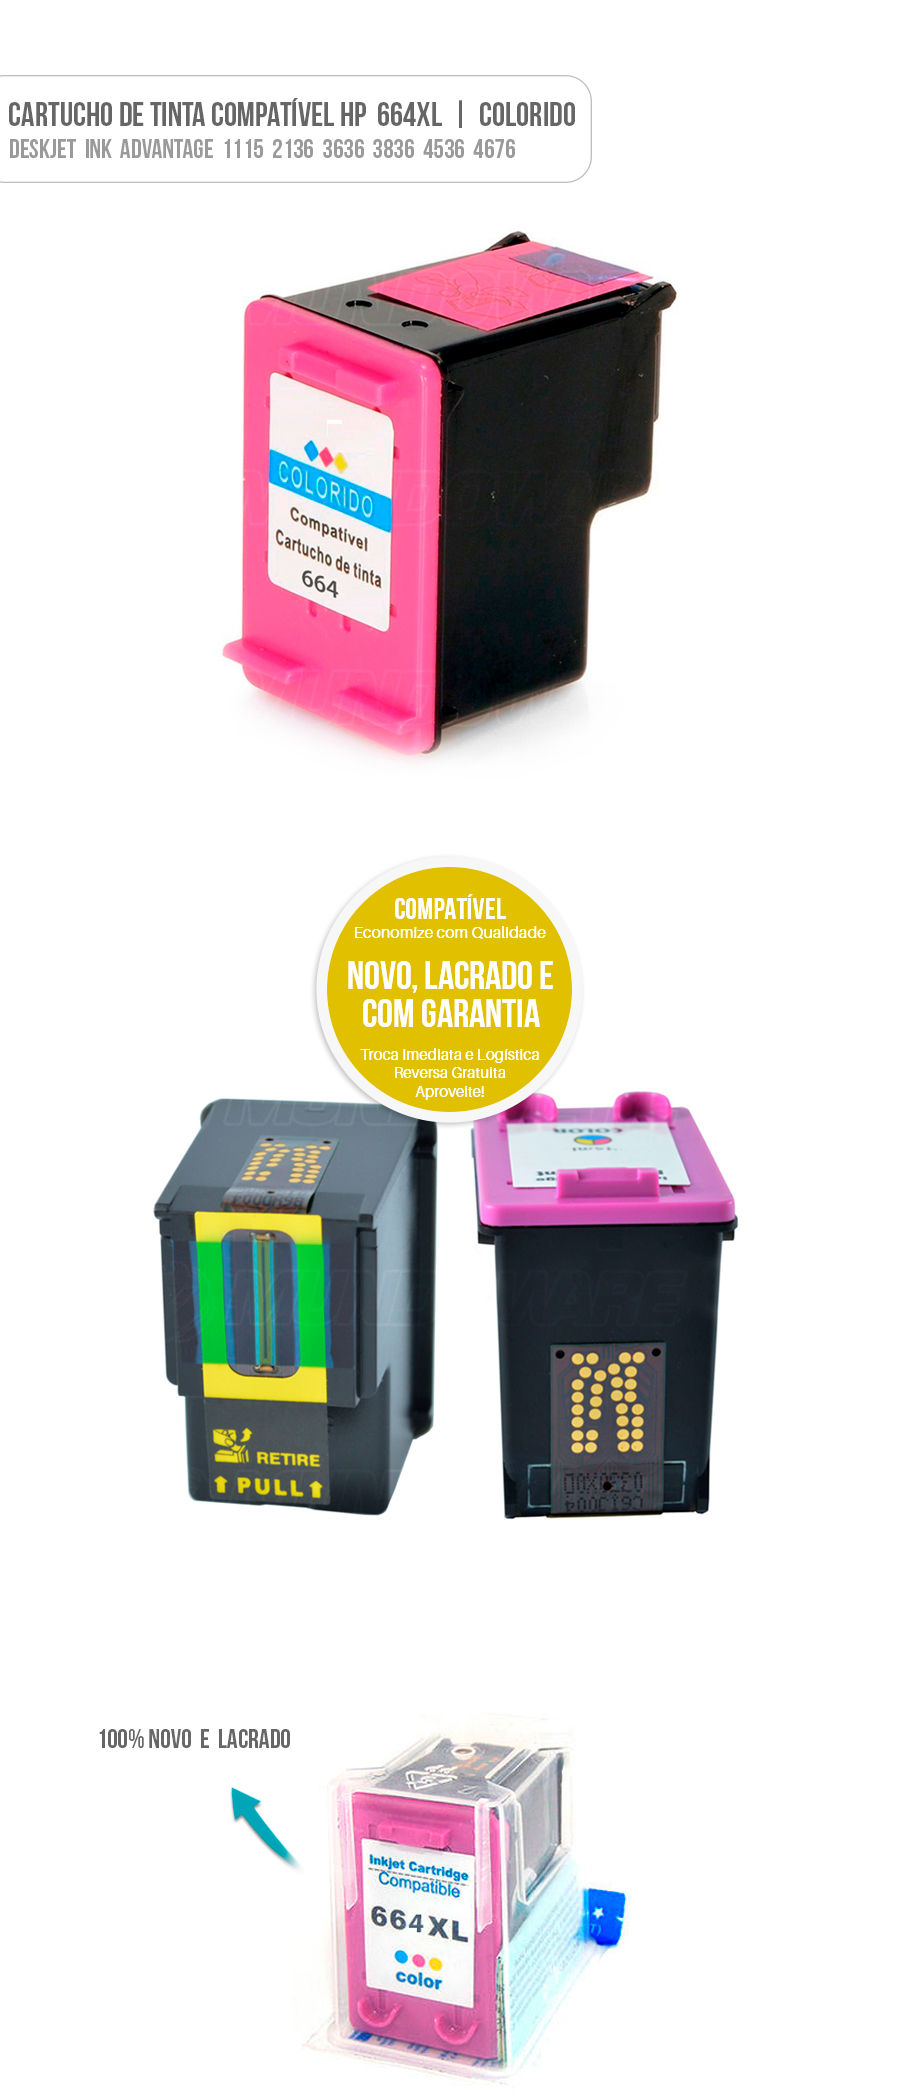 Cartucho de Tinta Deskjet  Ink  Advantage  1115  2136  3636  3836  4536  4676